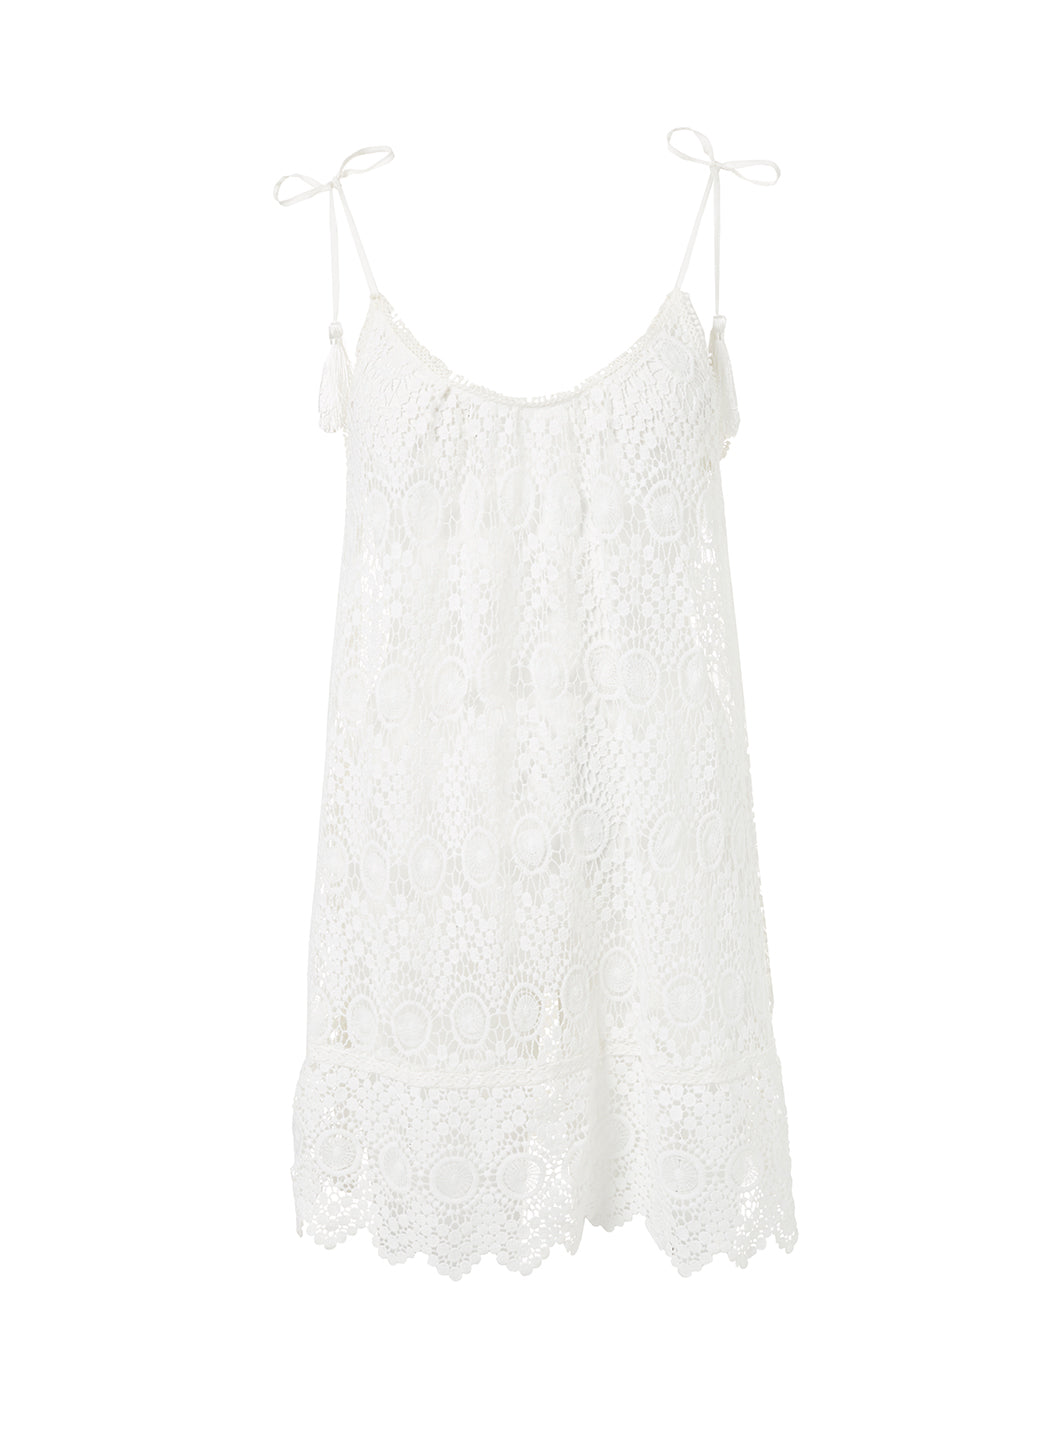 Ana Cream Lace Short Tie-Shoulder Beach Dress - Melissa Odabash Dresses & Kaftans